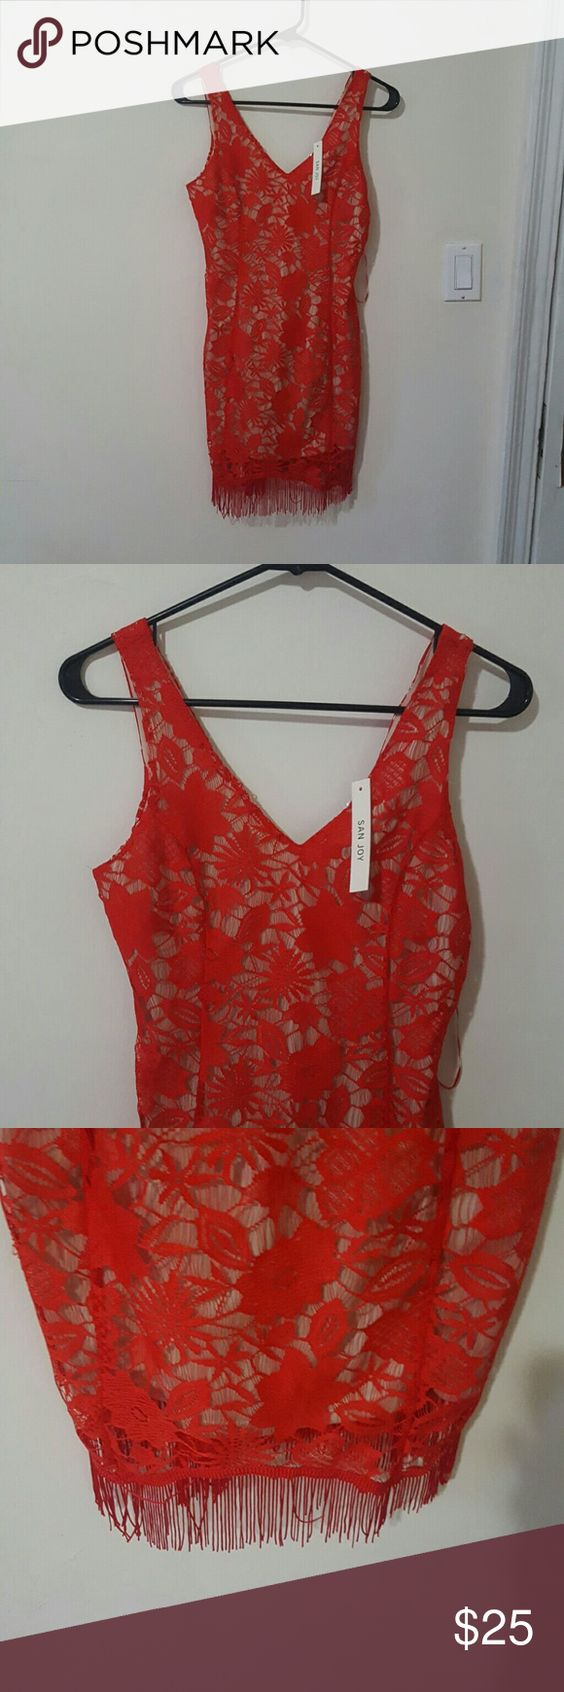 NWT San joy lace dress Not from for love and lemons but similiar style. New with tags. Red lace over a nude slip. Fringe bottom. Brand is San joy For Love and Lemons Dresses Mini